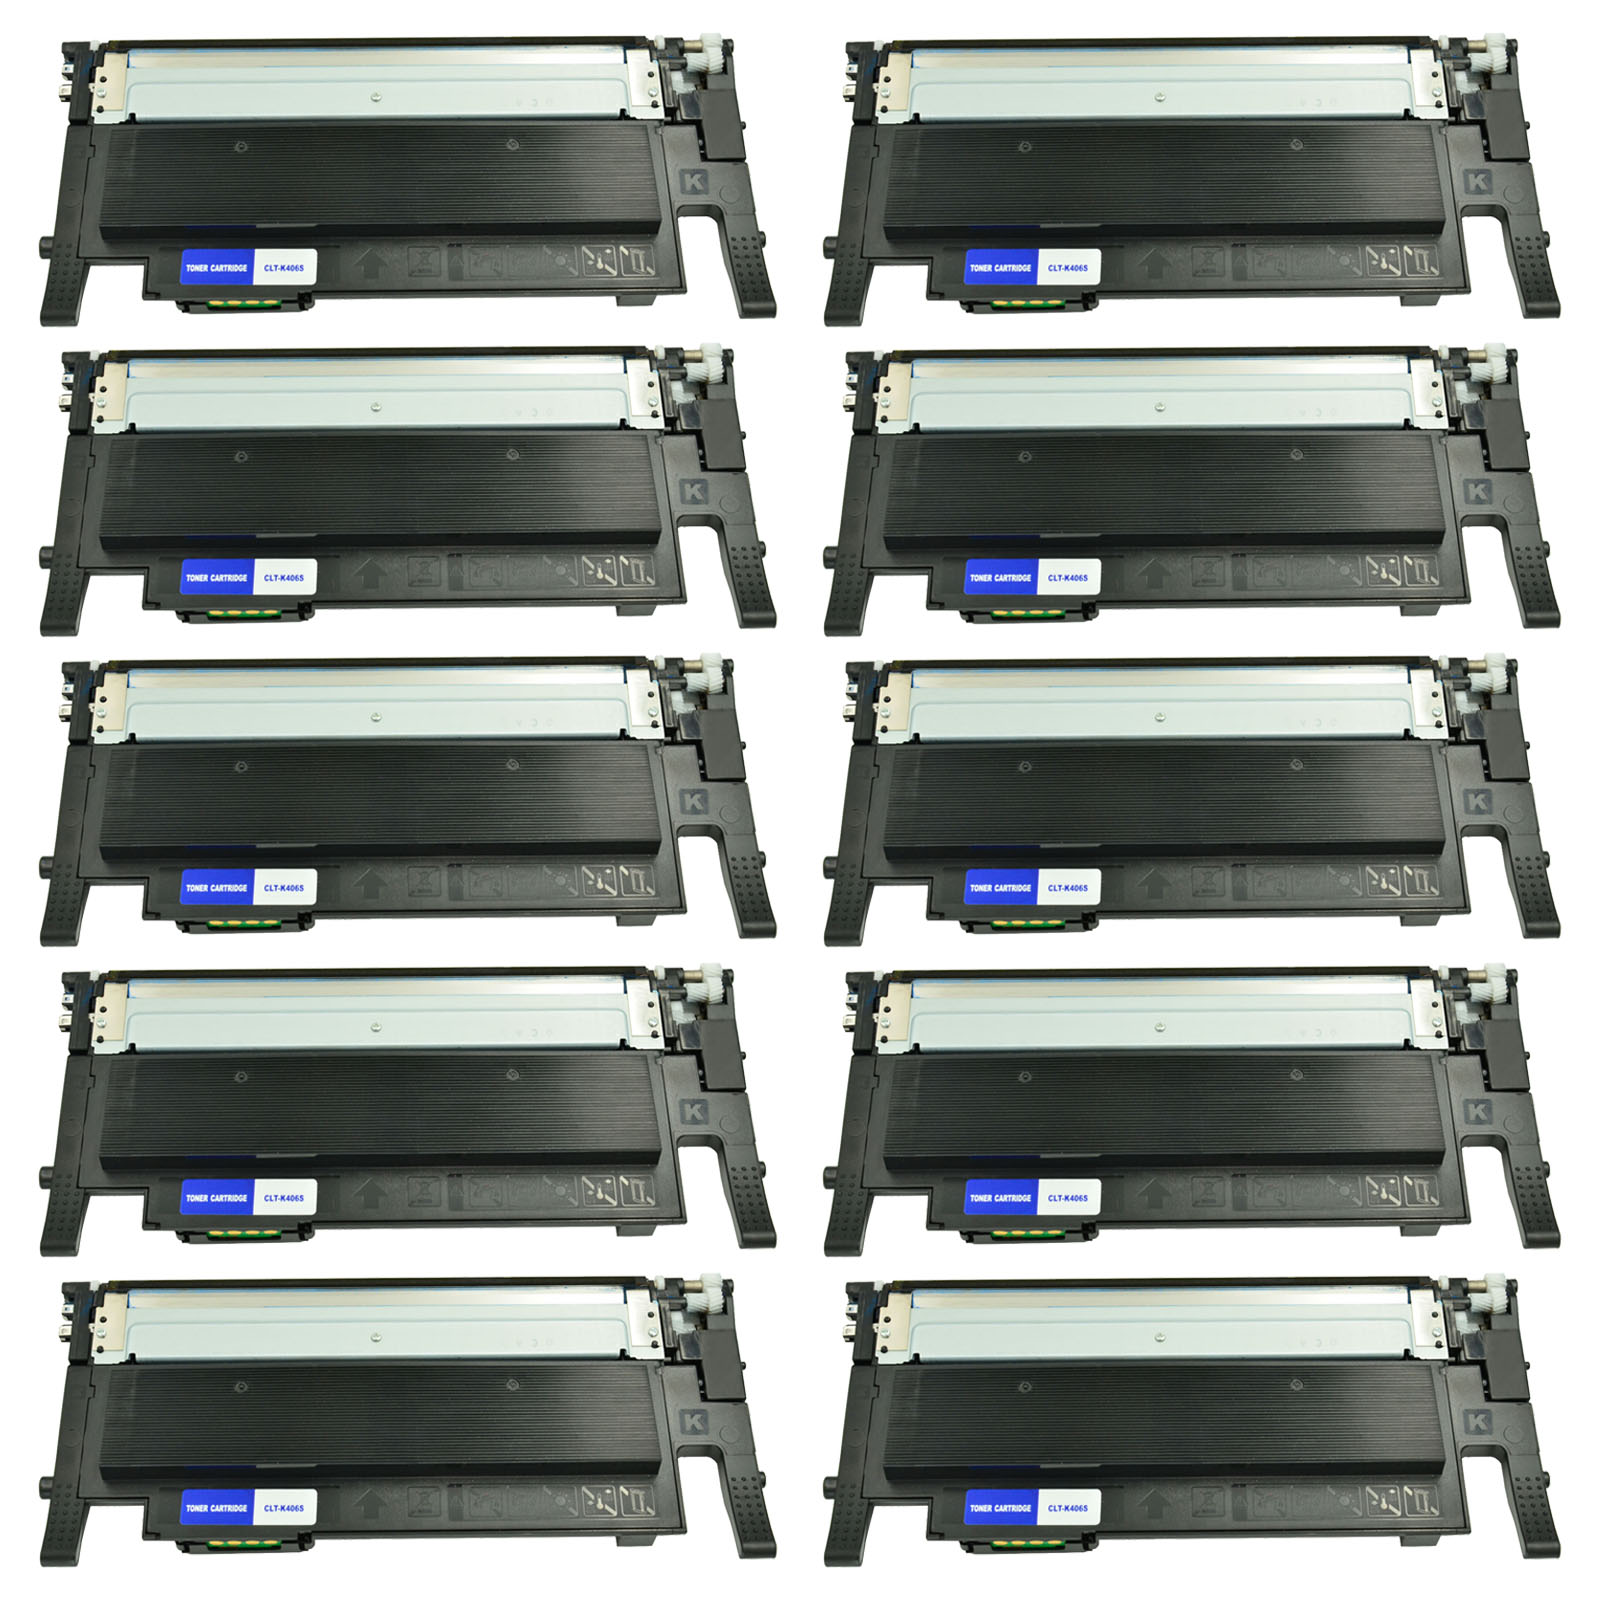 Compatible Toner Cartridges Replacement for Samsung CLT-K406S for Samsung CLP-360 CLP-365 CLX-3305 Laser Printer with Chips-Combination